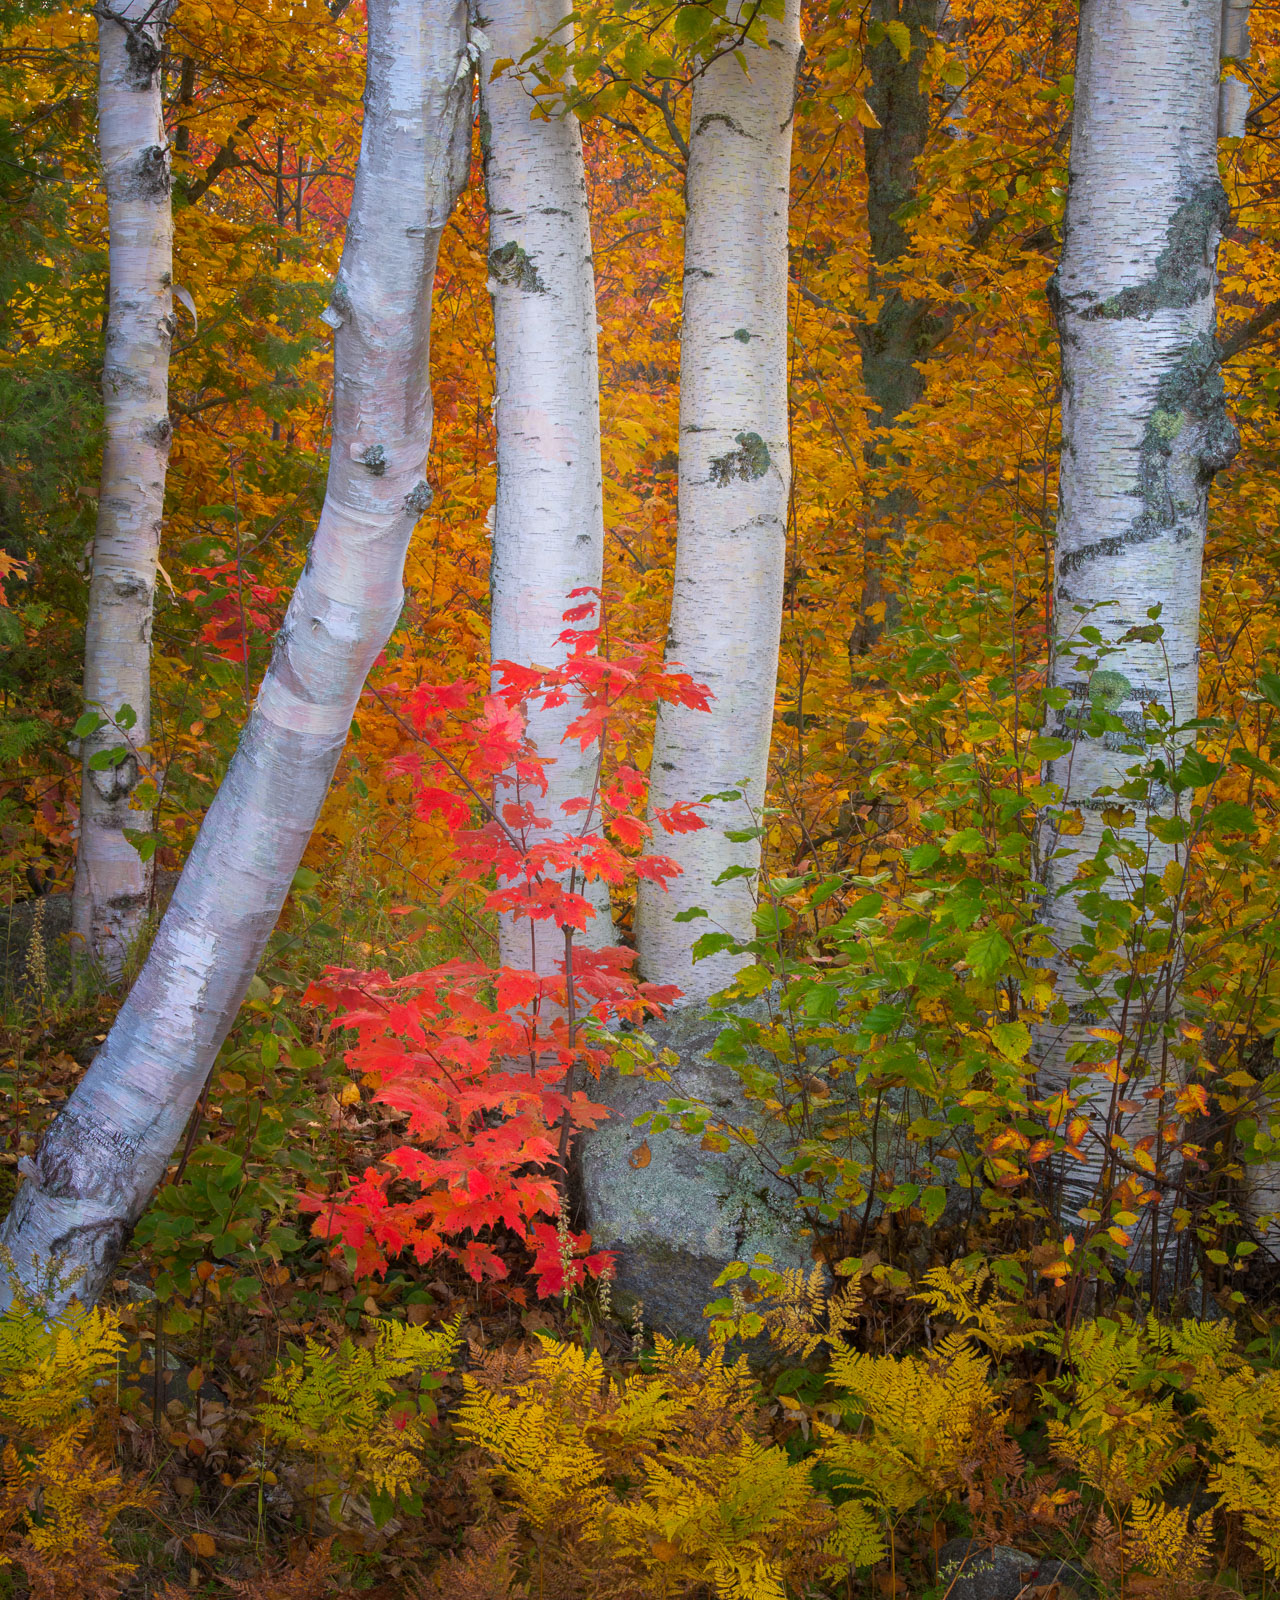 Autumn color in the Groton State Forest, Vermont.